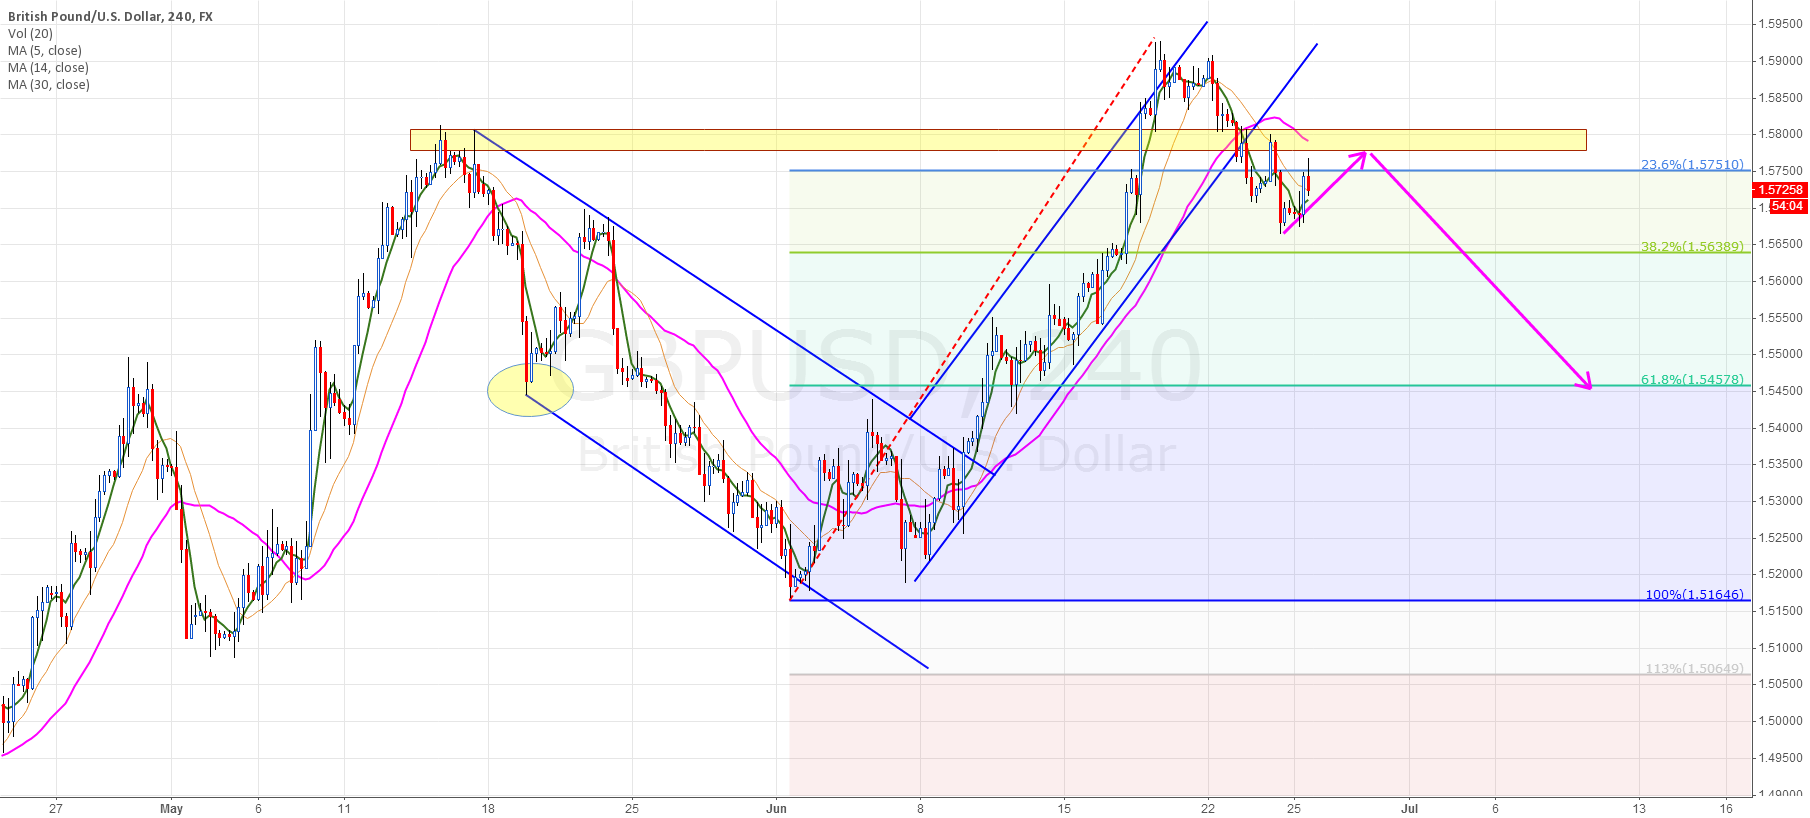 GBP/USD Mid-Term Analysis Target:1.54580